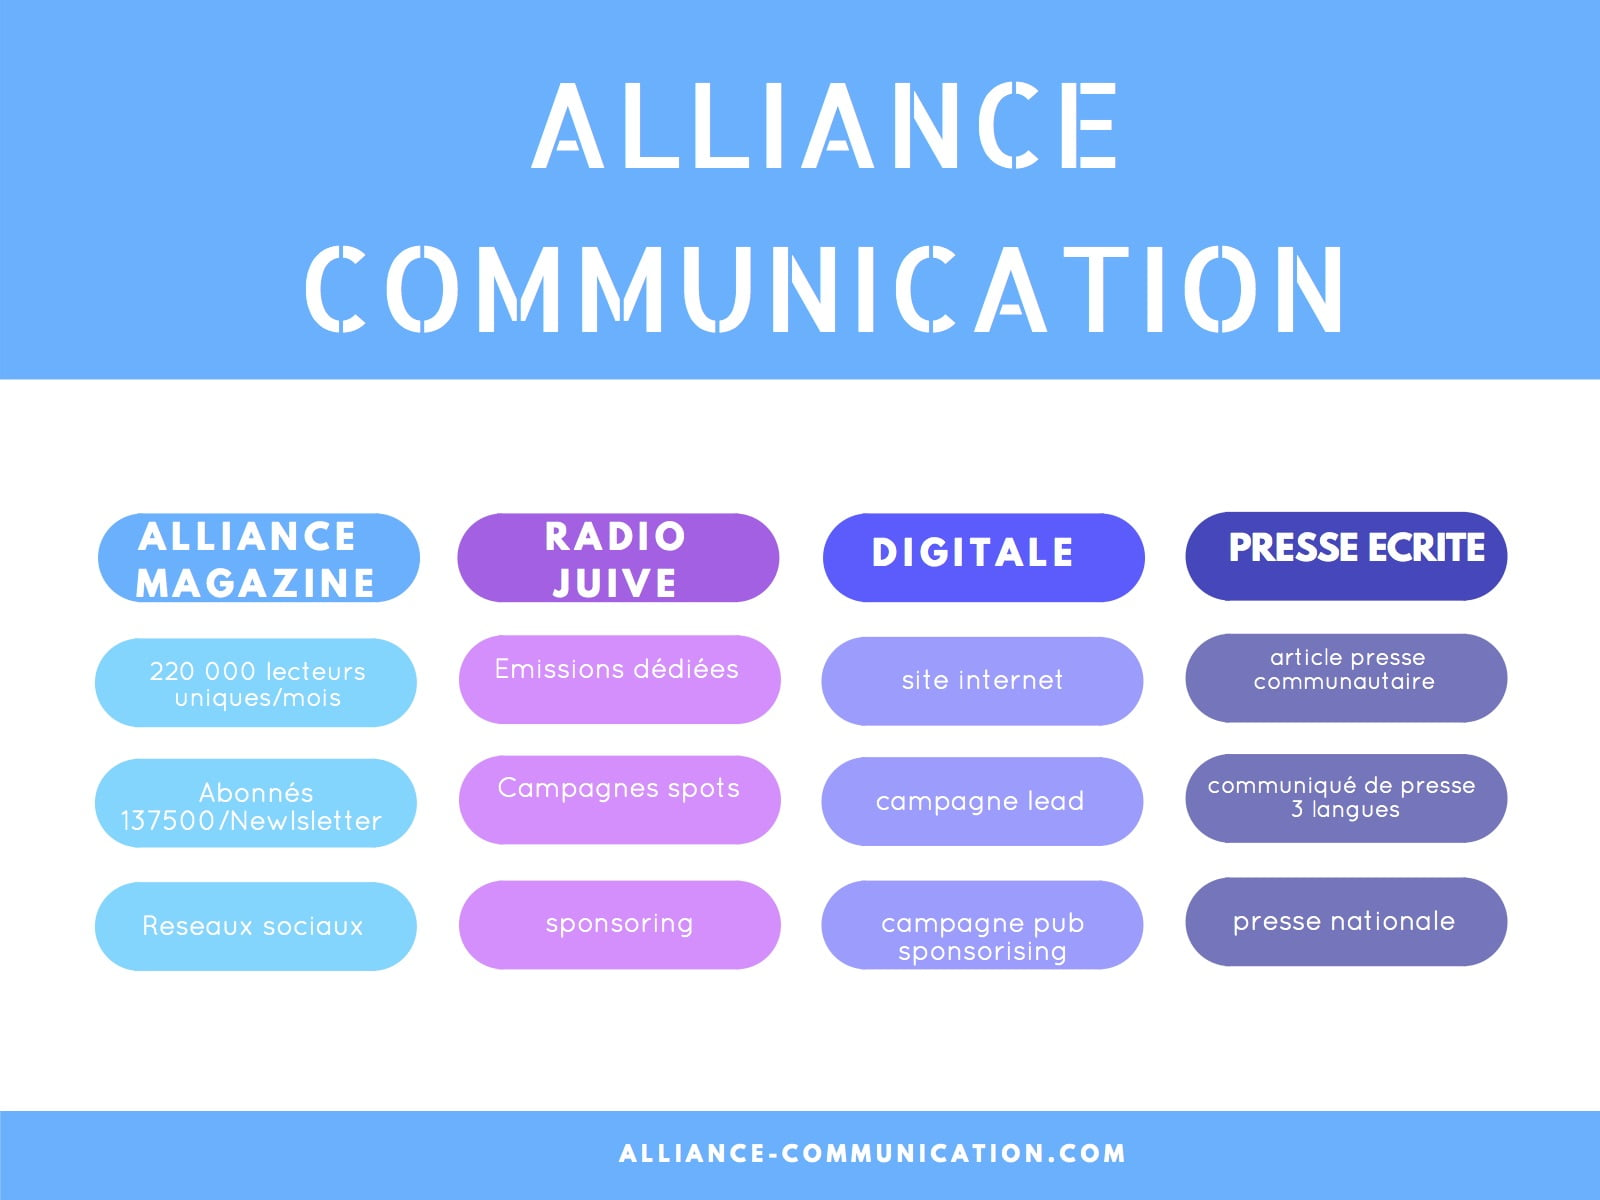 Prestations de Alliance-Communication